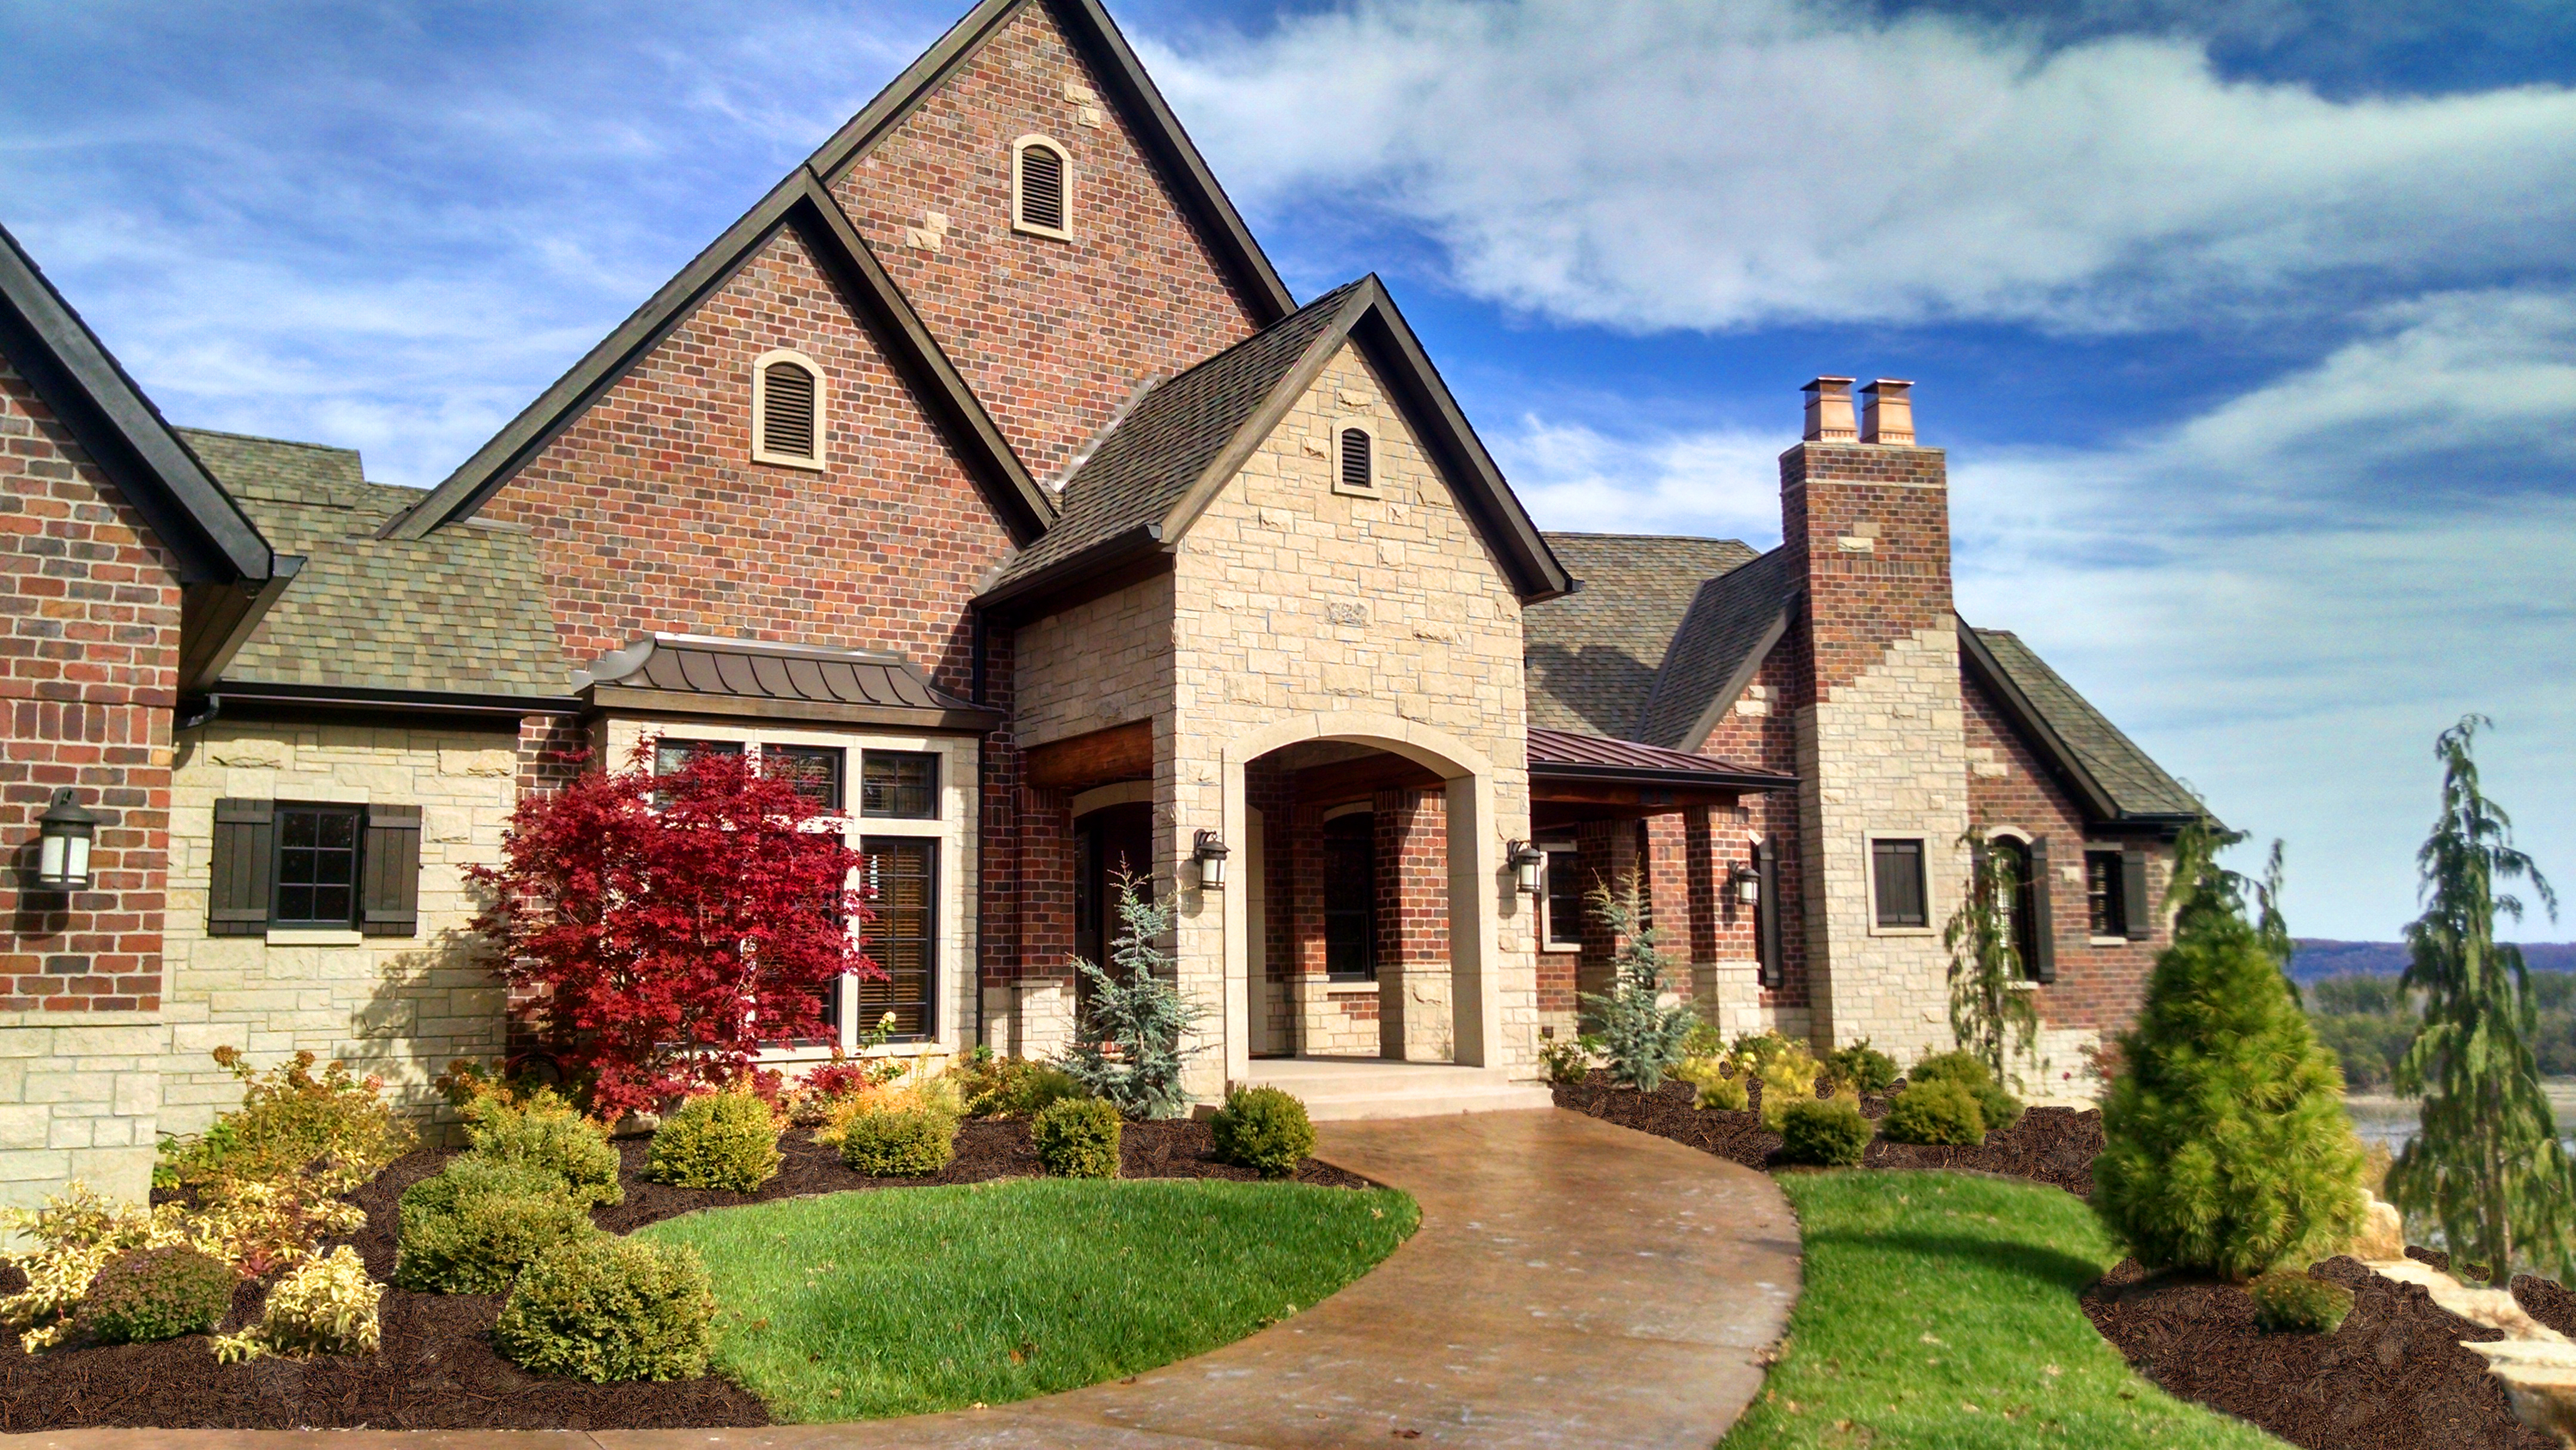 Brick House with Beautiful Front Yard